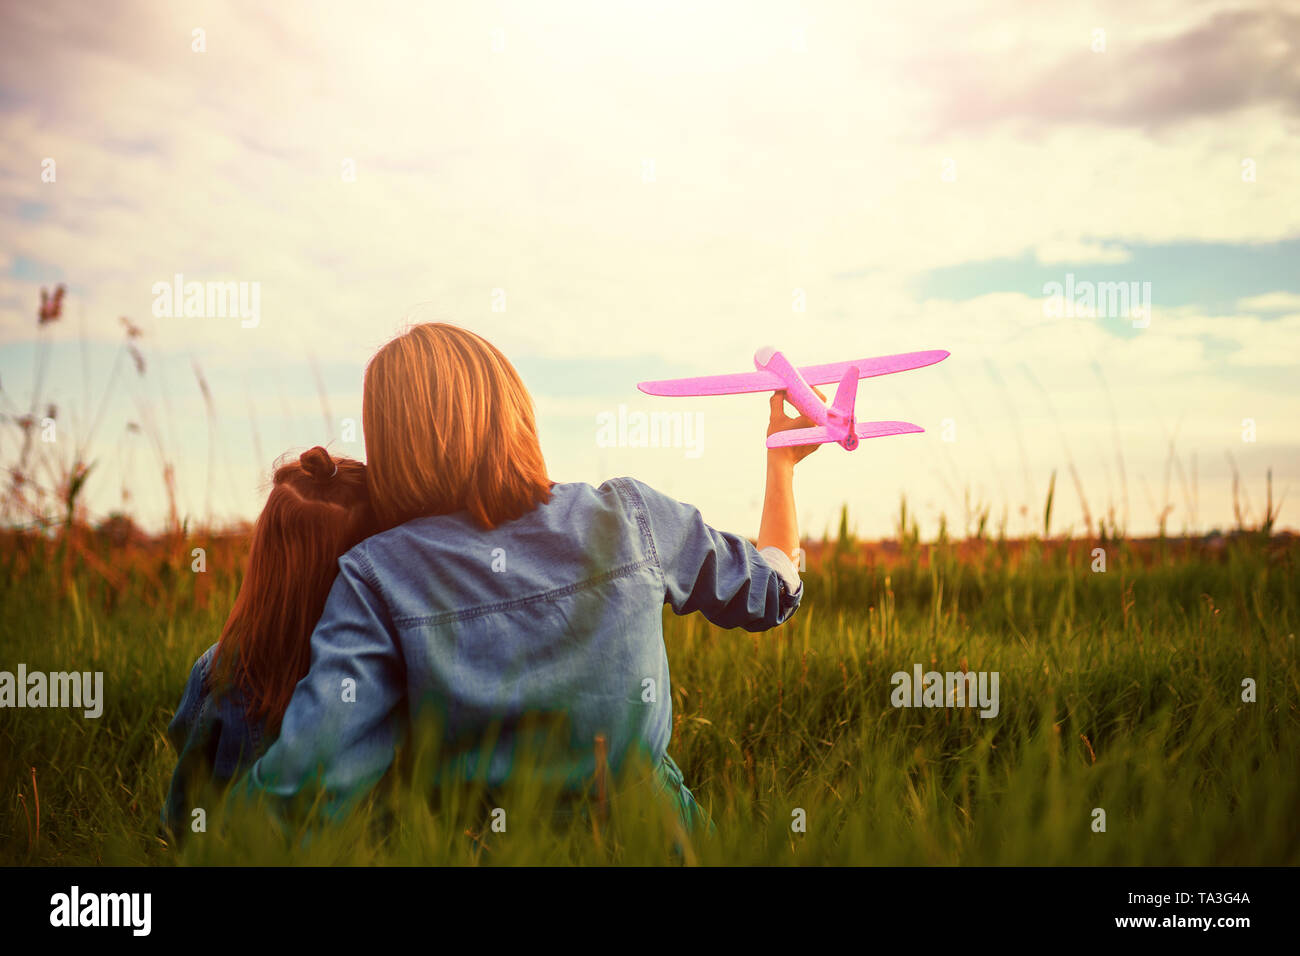 Back view of woman and girl in denim outfits hugging and playing with pink toy plane while sitting on green grass against cloudy sky together - Stock Image